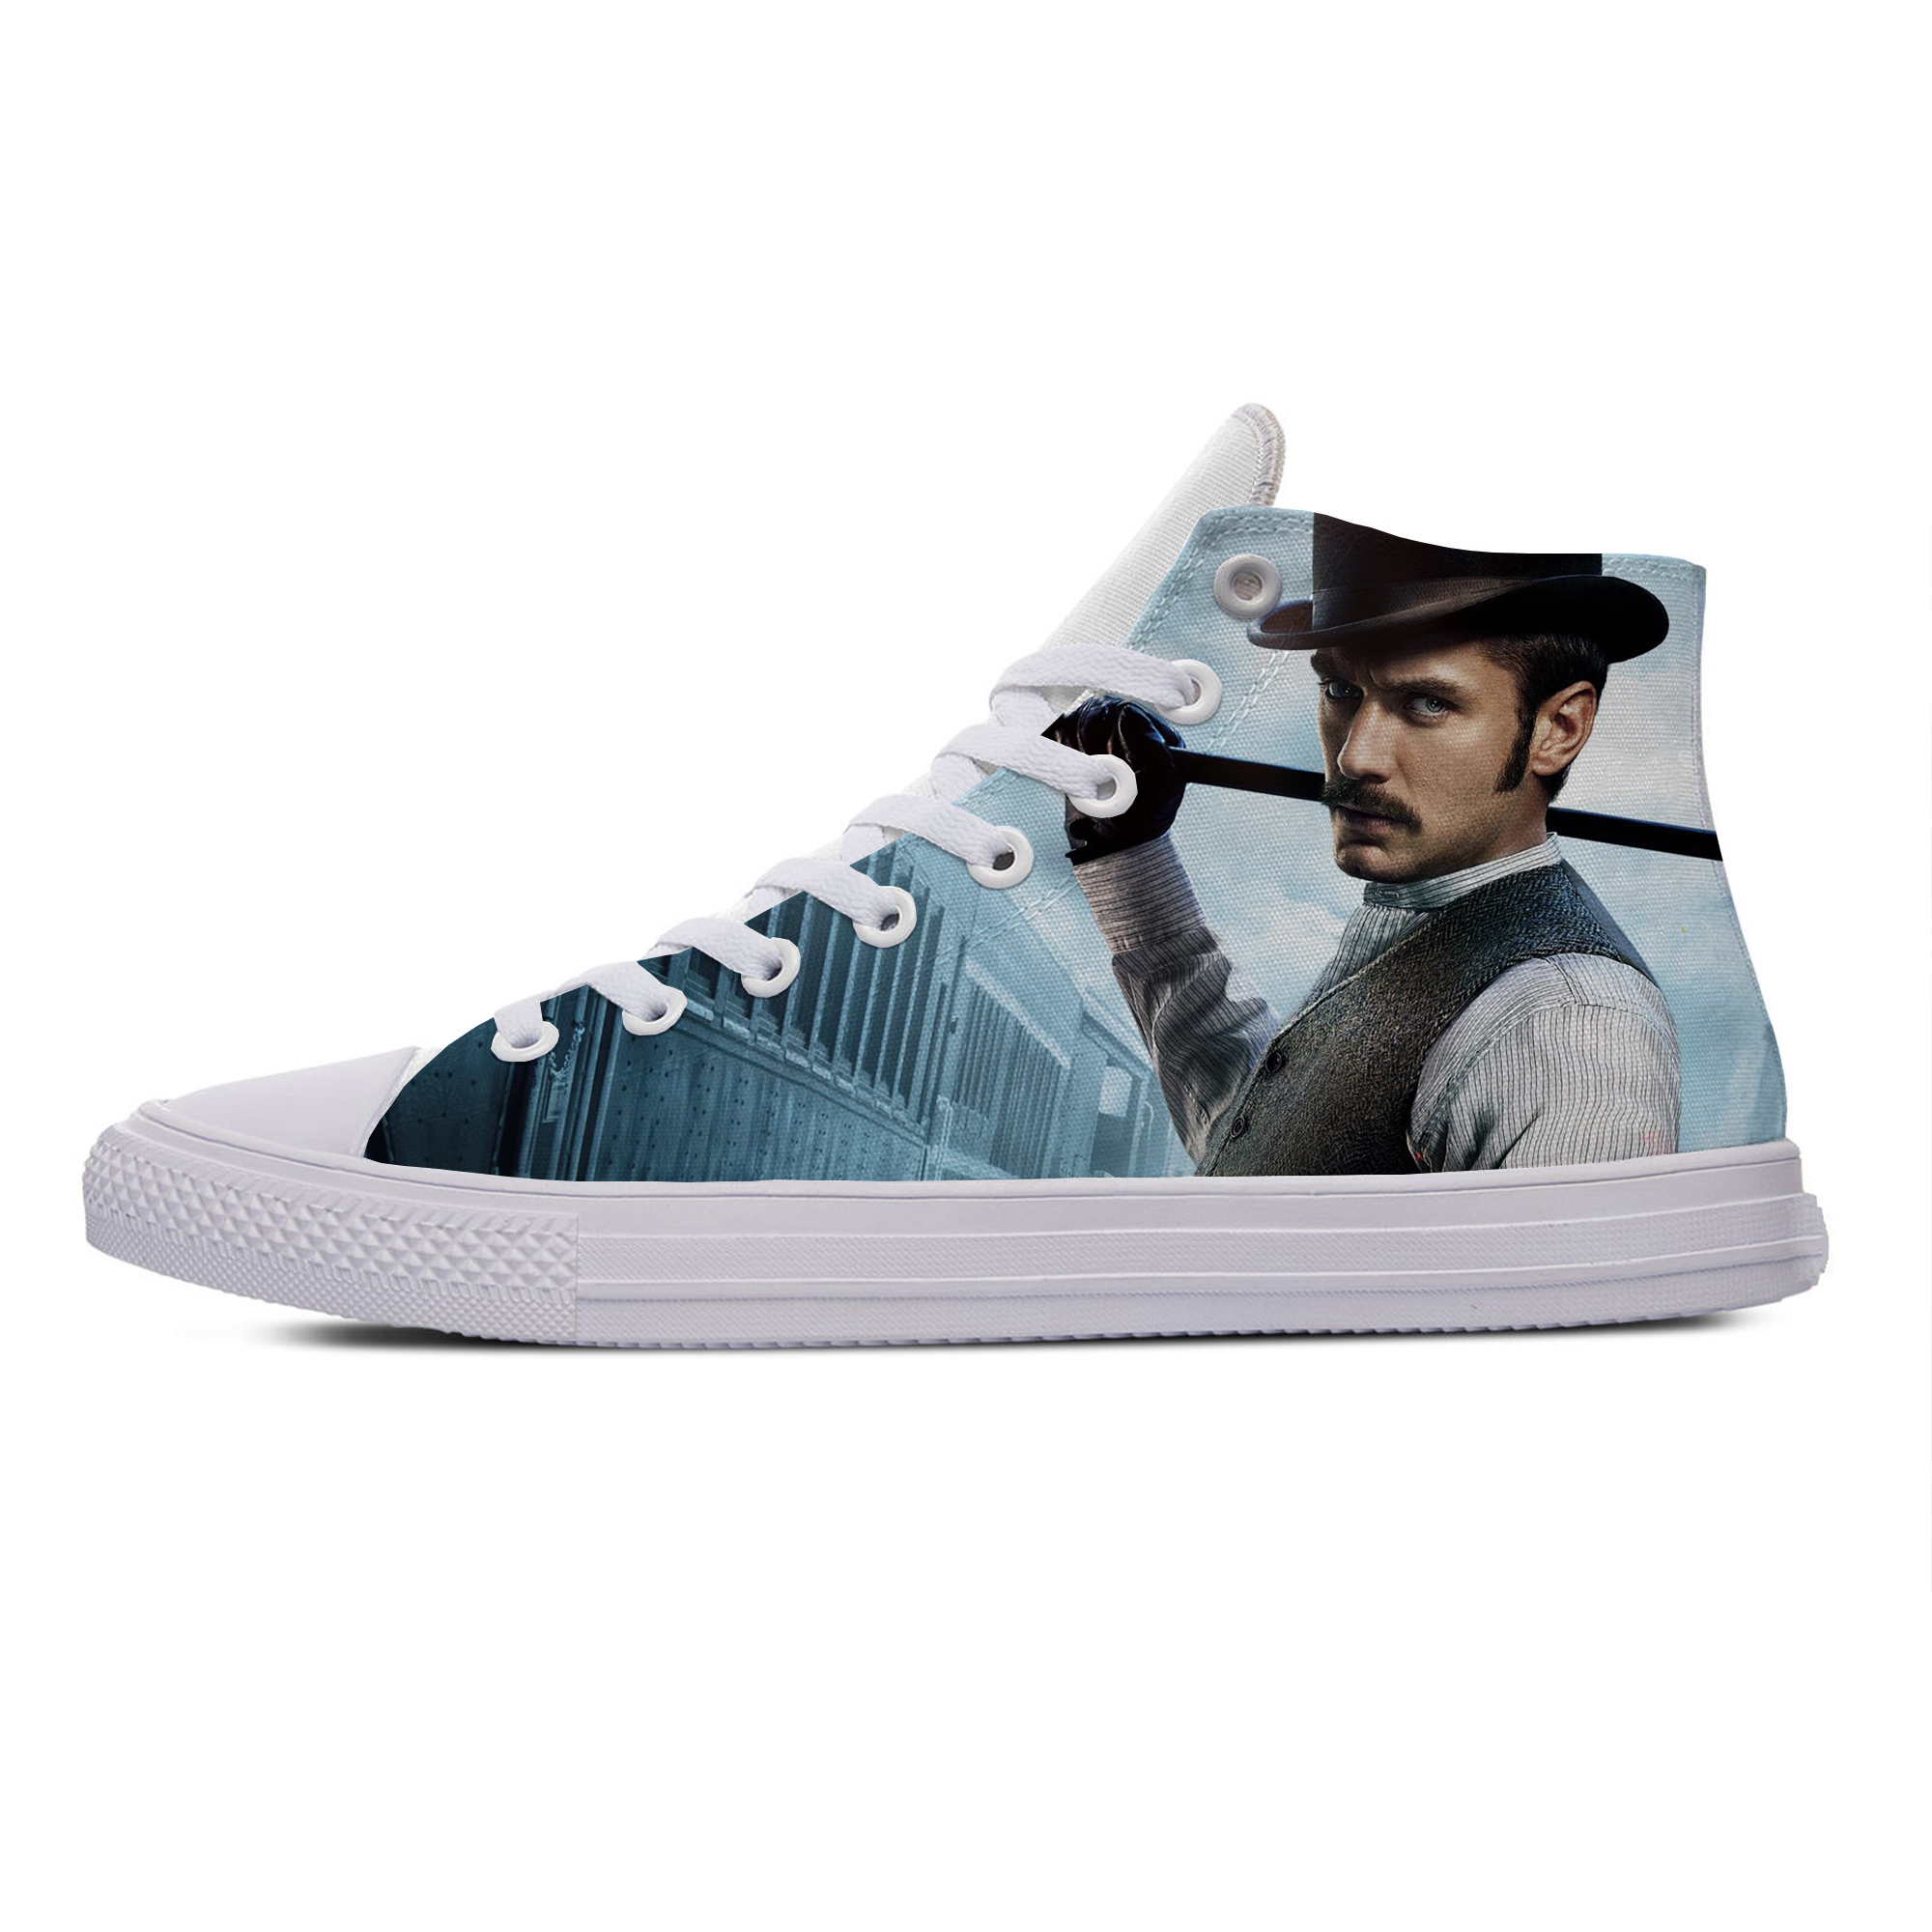 Sherlock Holmes Suspense Movie Hot Fashion Casual Canvas Shoes High Top Breathable Lightweight Sneakers 3D Print For Men Women image